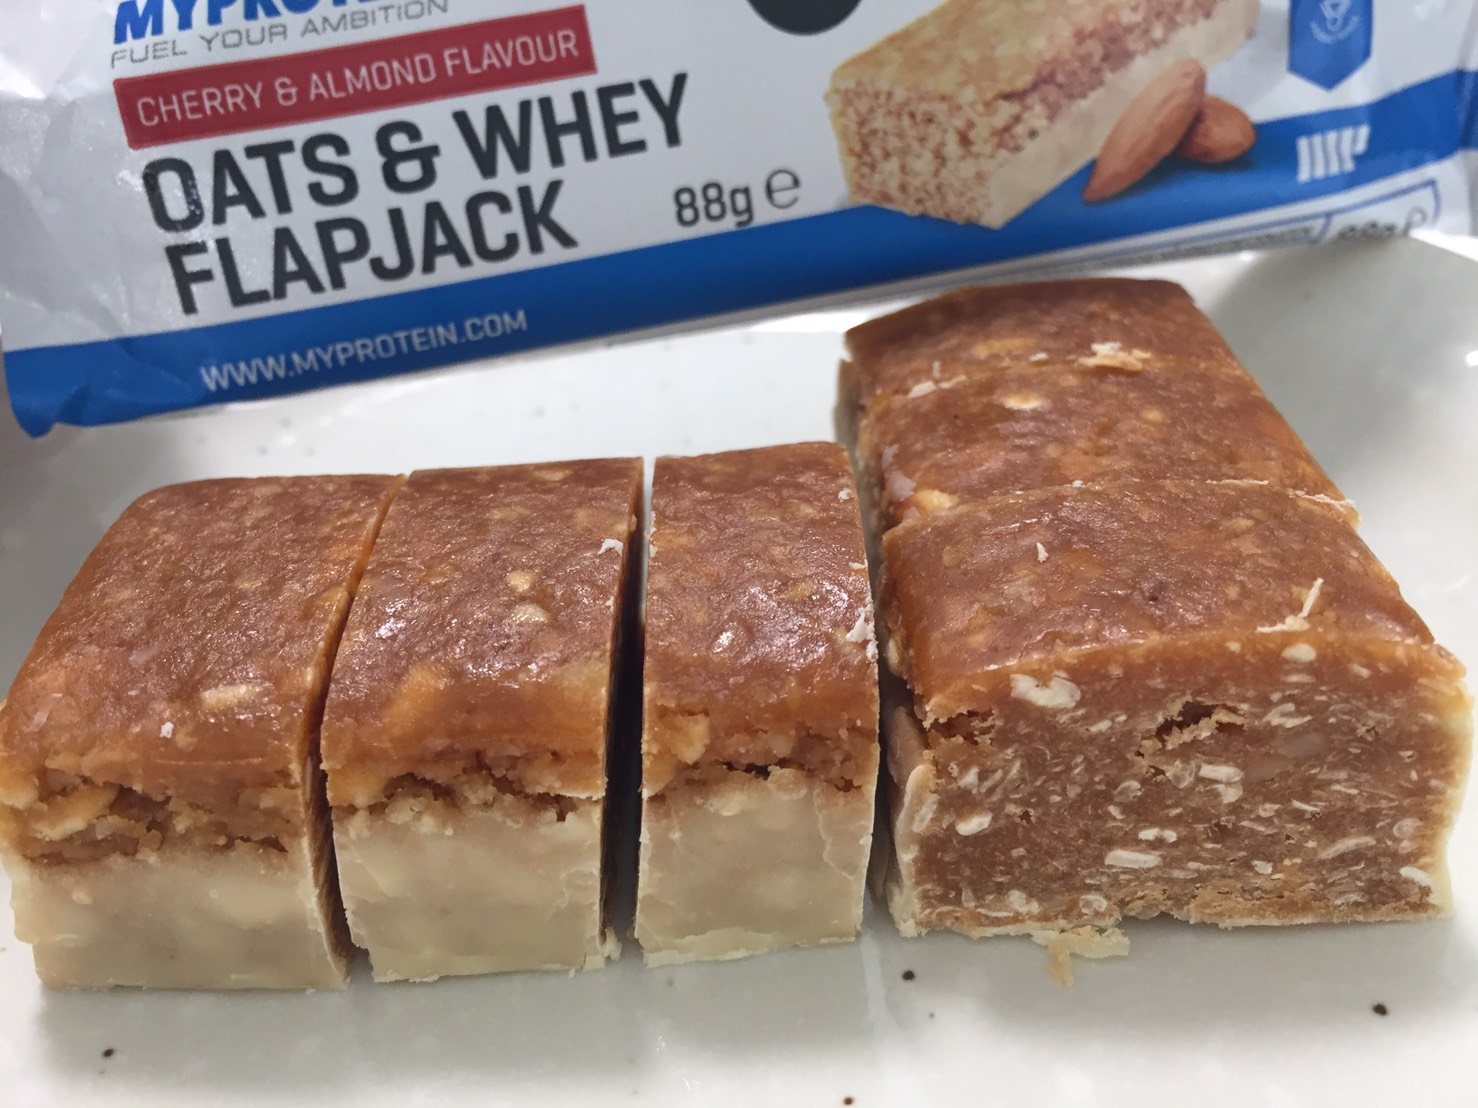 OATS & WHEY FLAPJACK(オーツ & ホエイ)「CHERRY & ALMOND FLAVOUR(チェリー&アーモンド味)」を包丁で切った断面の様子